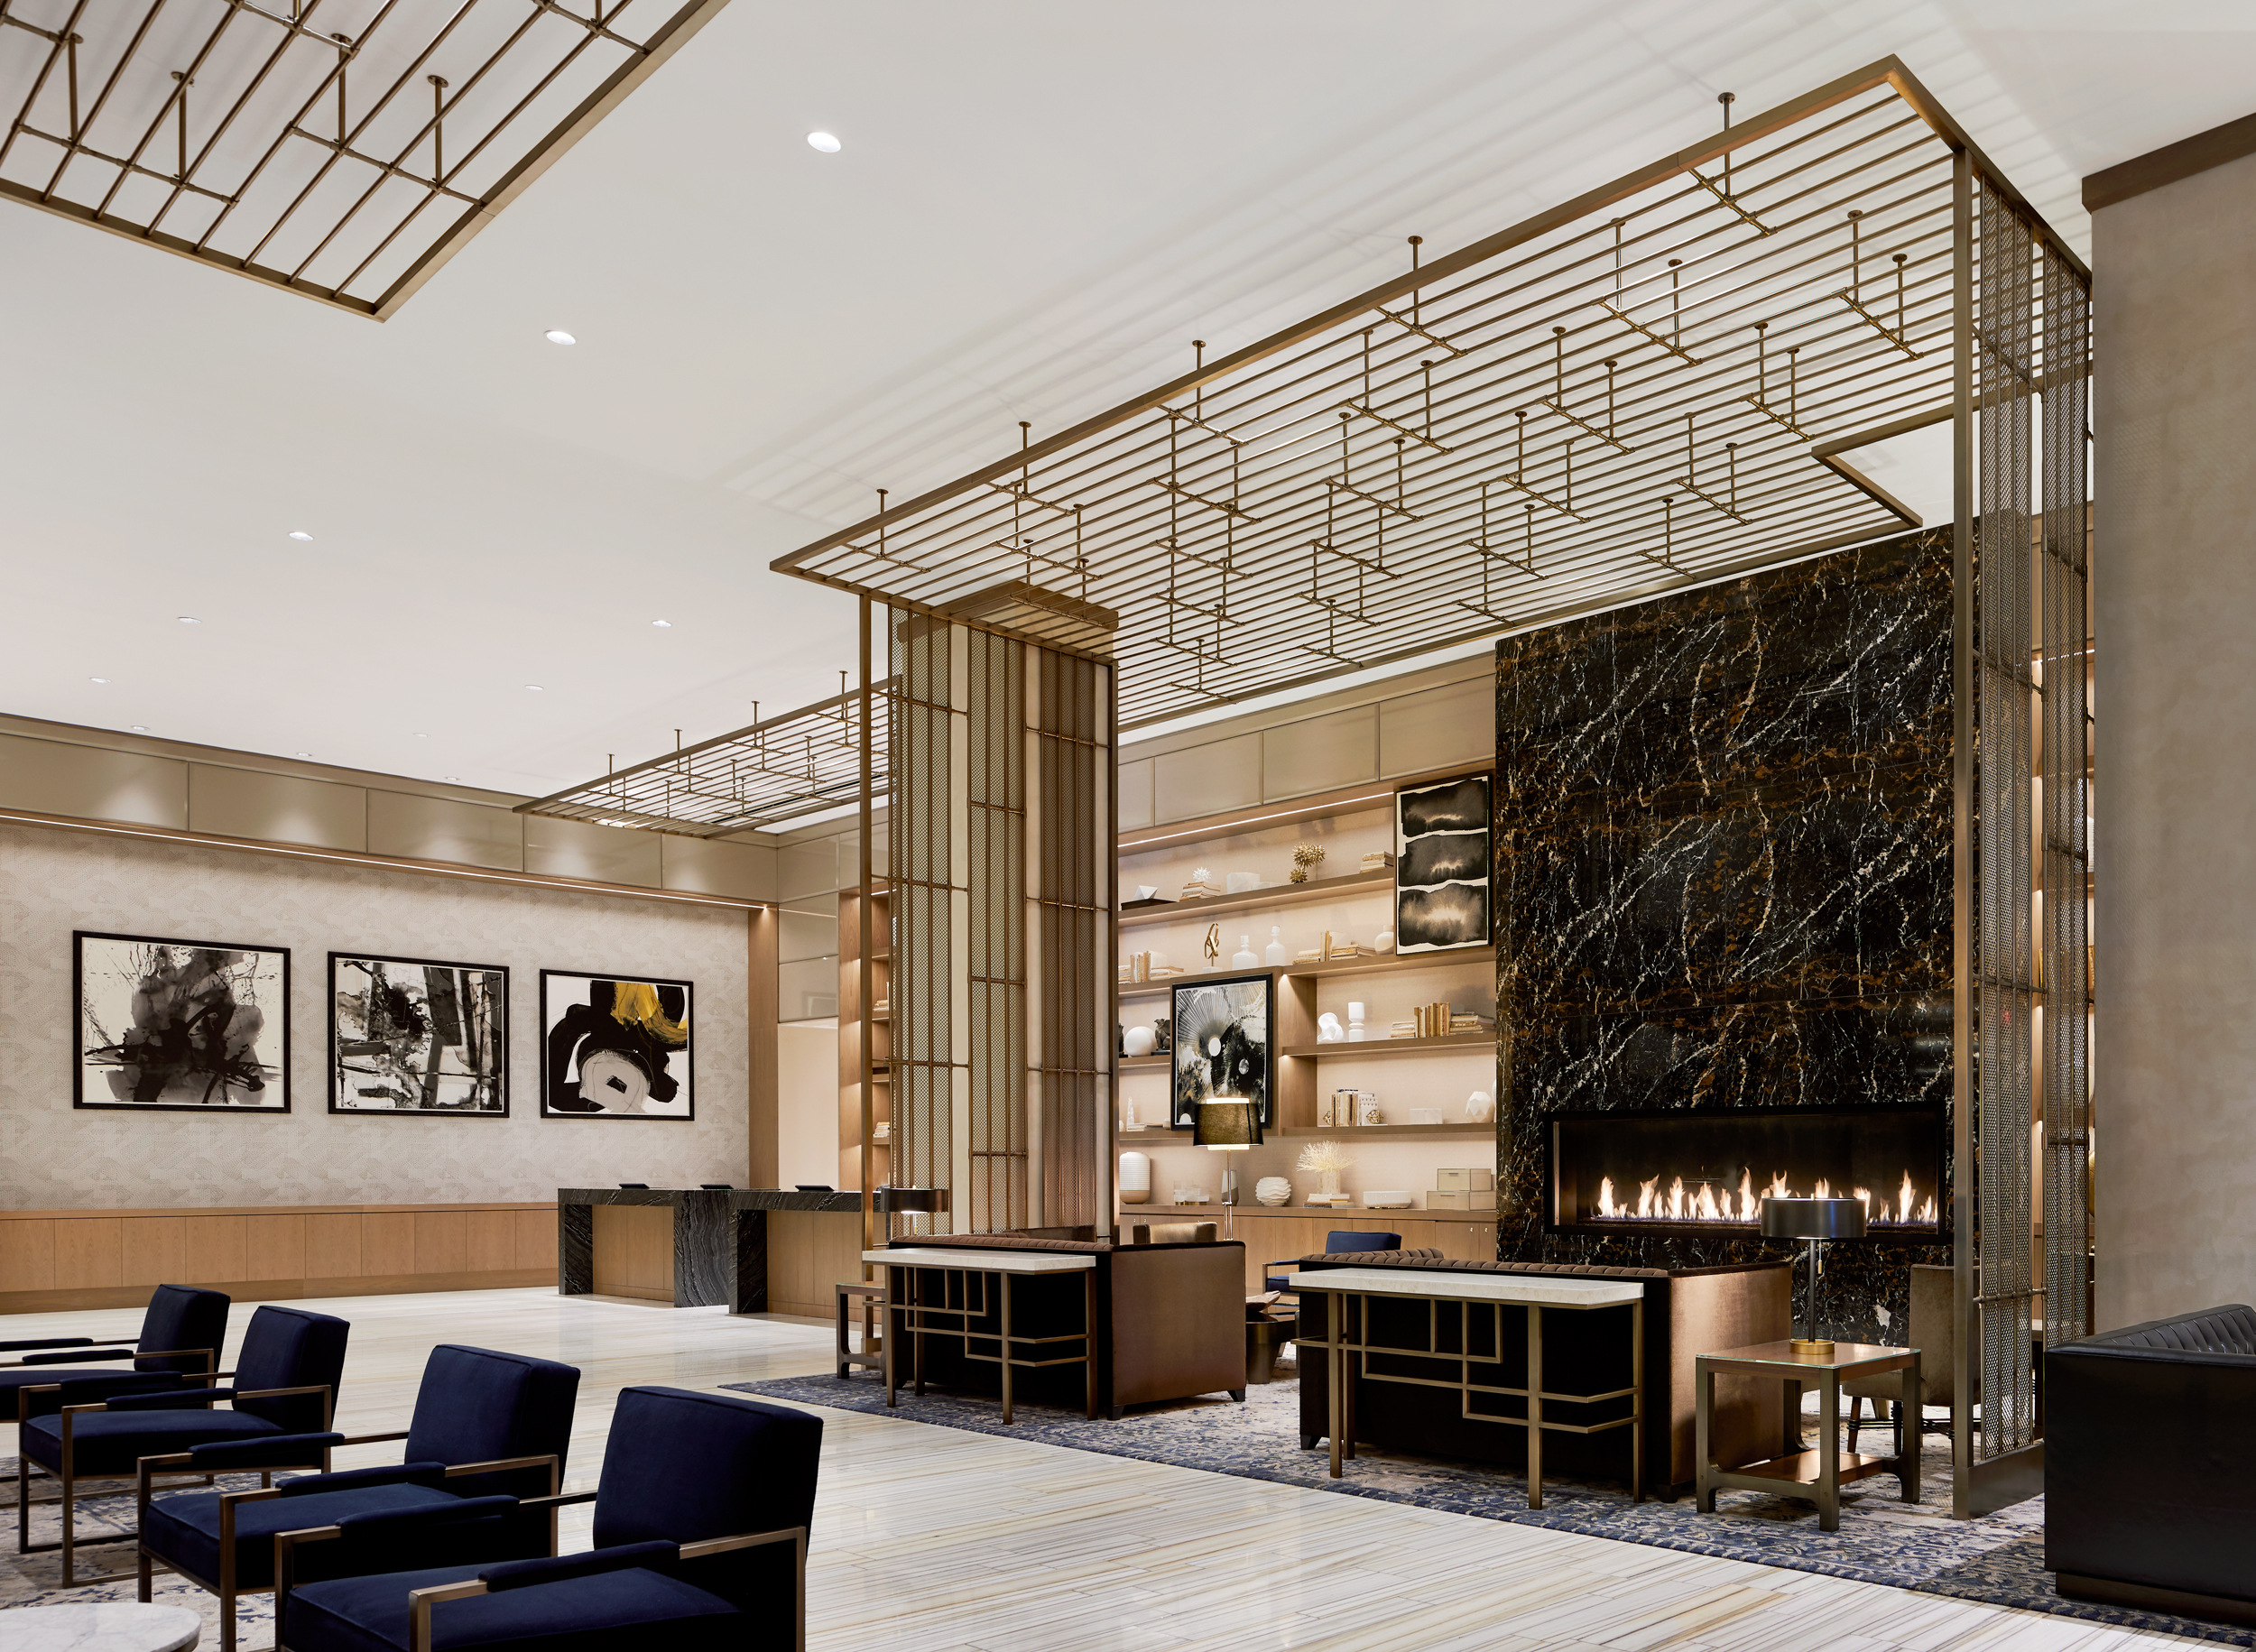 JW Marriott Nashville, Interior Design by Stonehill Taylor